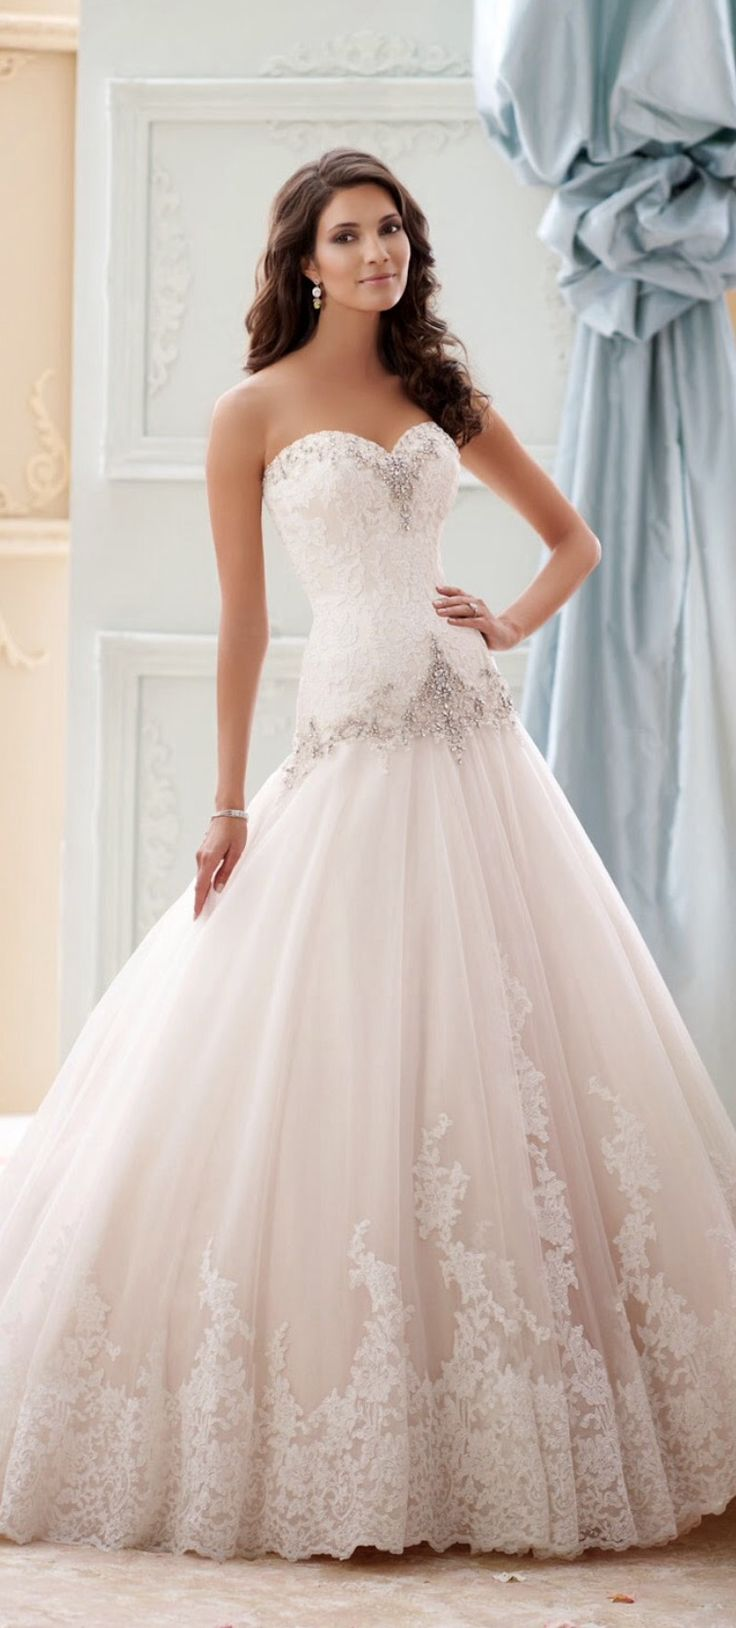 ugly wedding dress cute wedding dresses pretty Bling Wedding DressesWedding